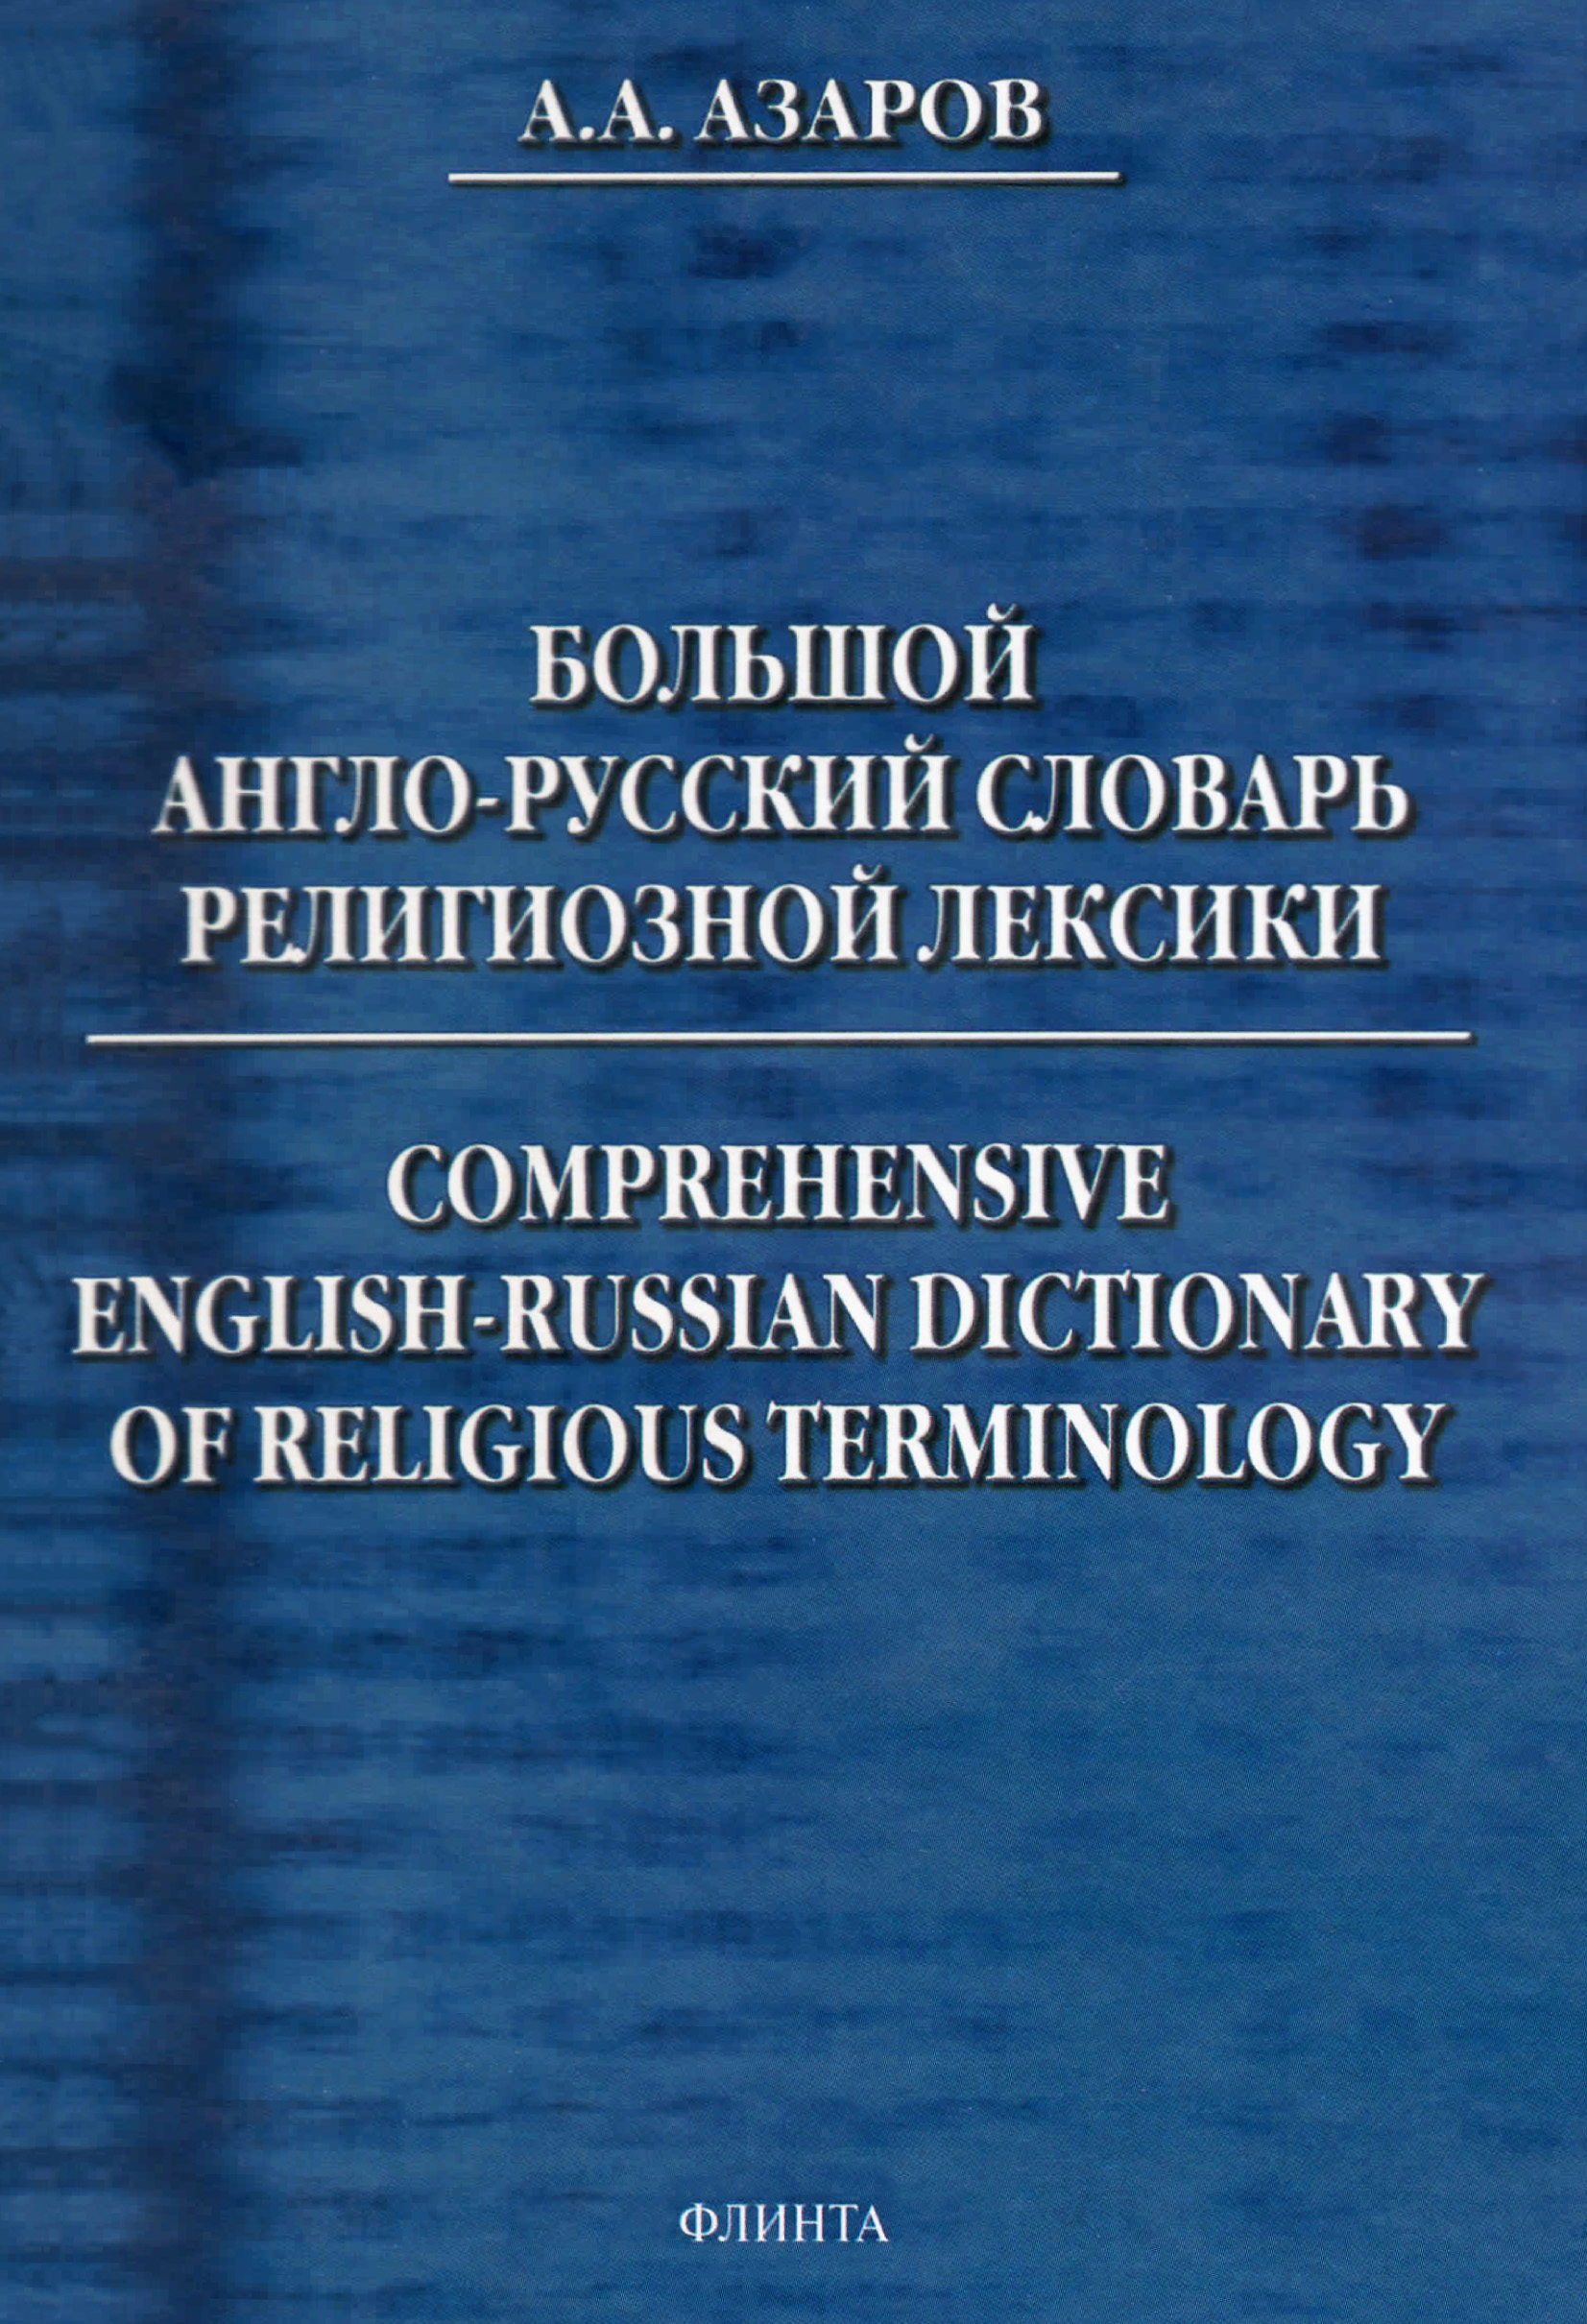 А. А. Азаров Большой англо-русский словарь религиозной лексики. Comprehensive English-Russian Dictionary of Religious Terminology collins essential chinese dictionary